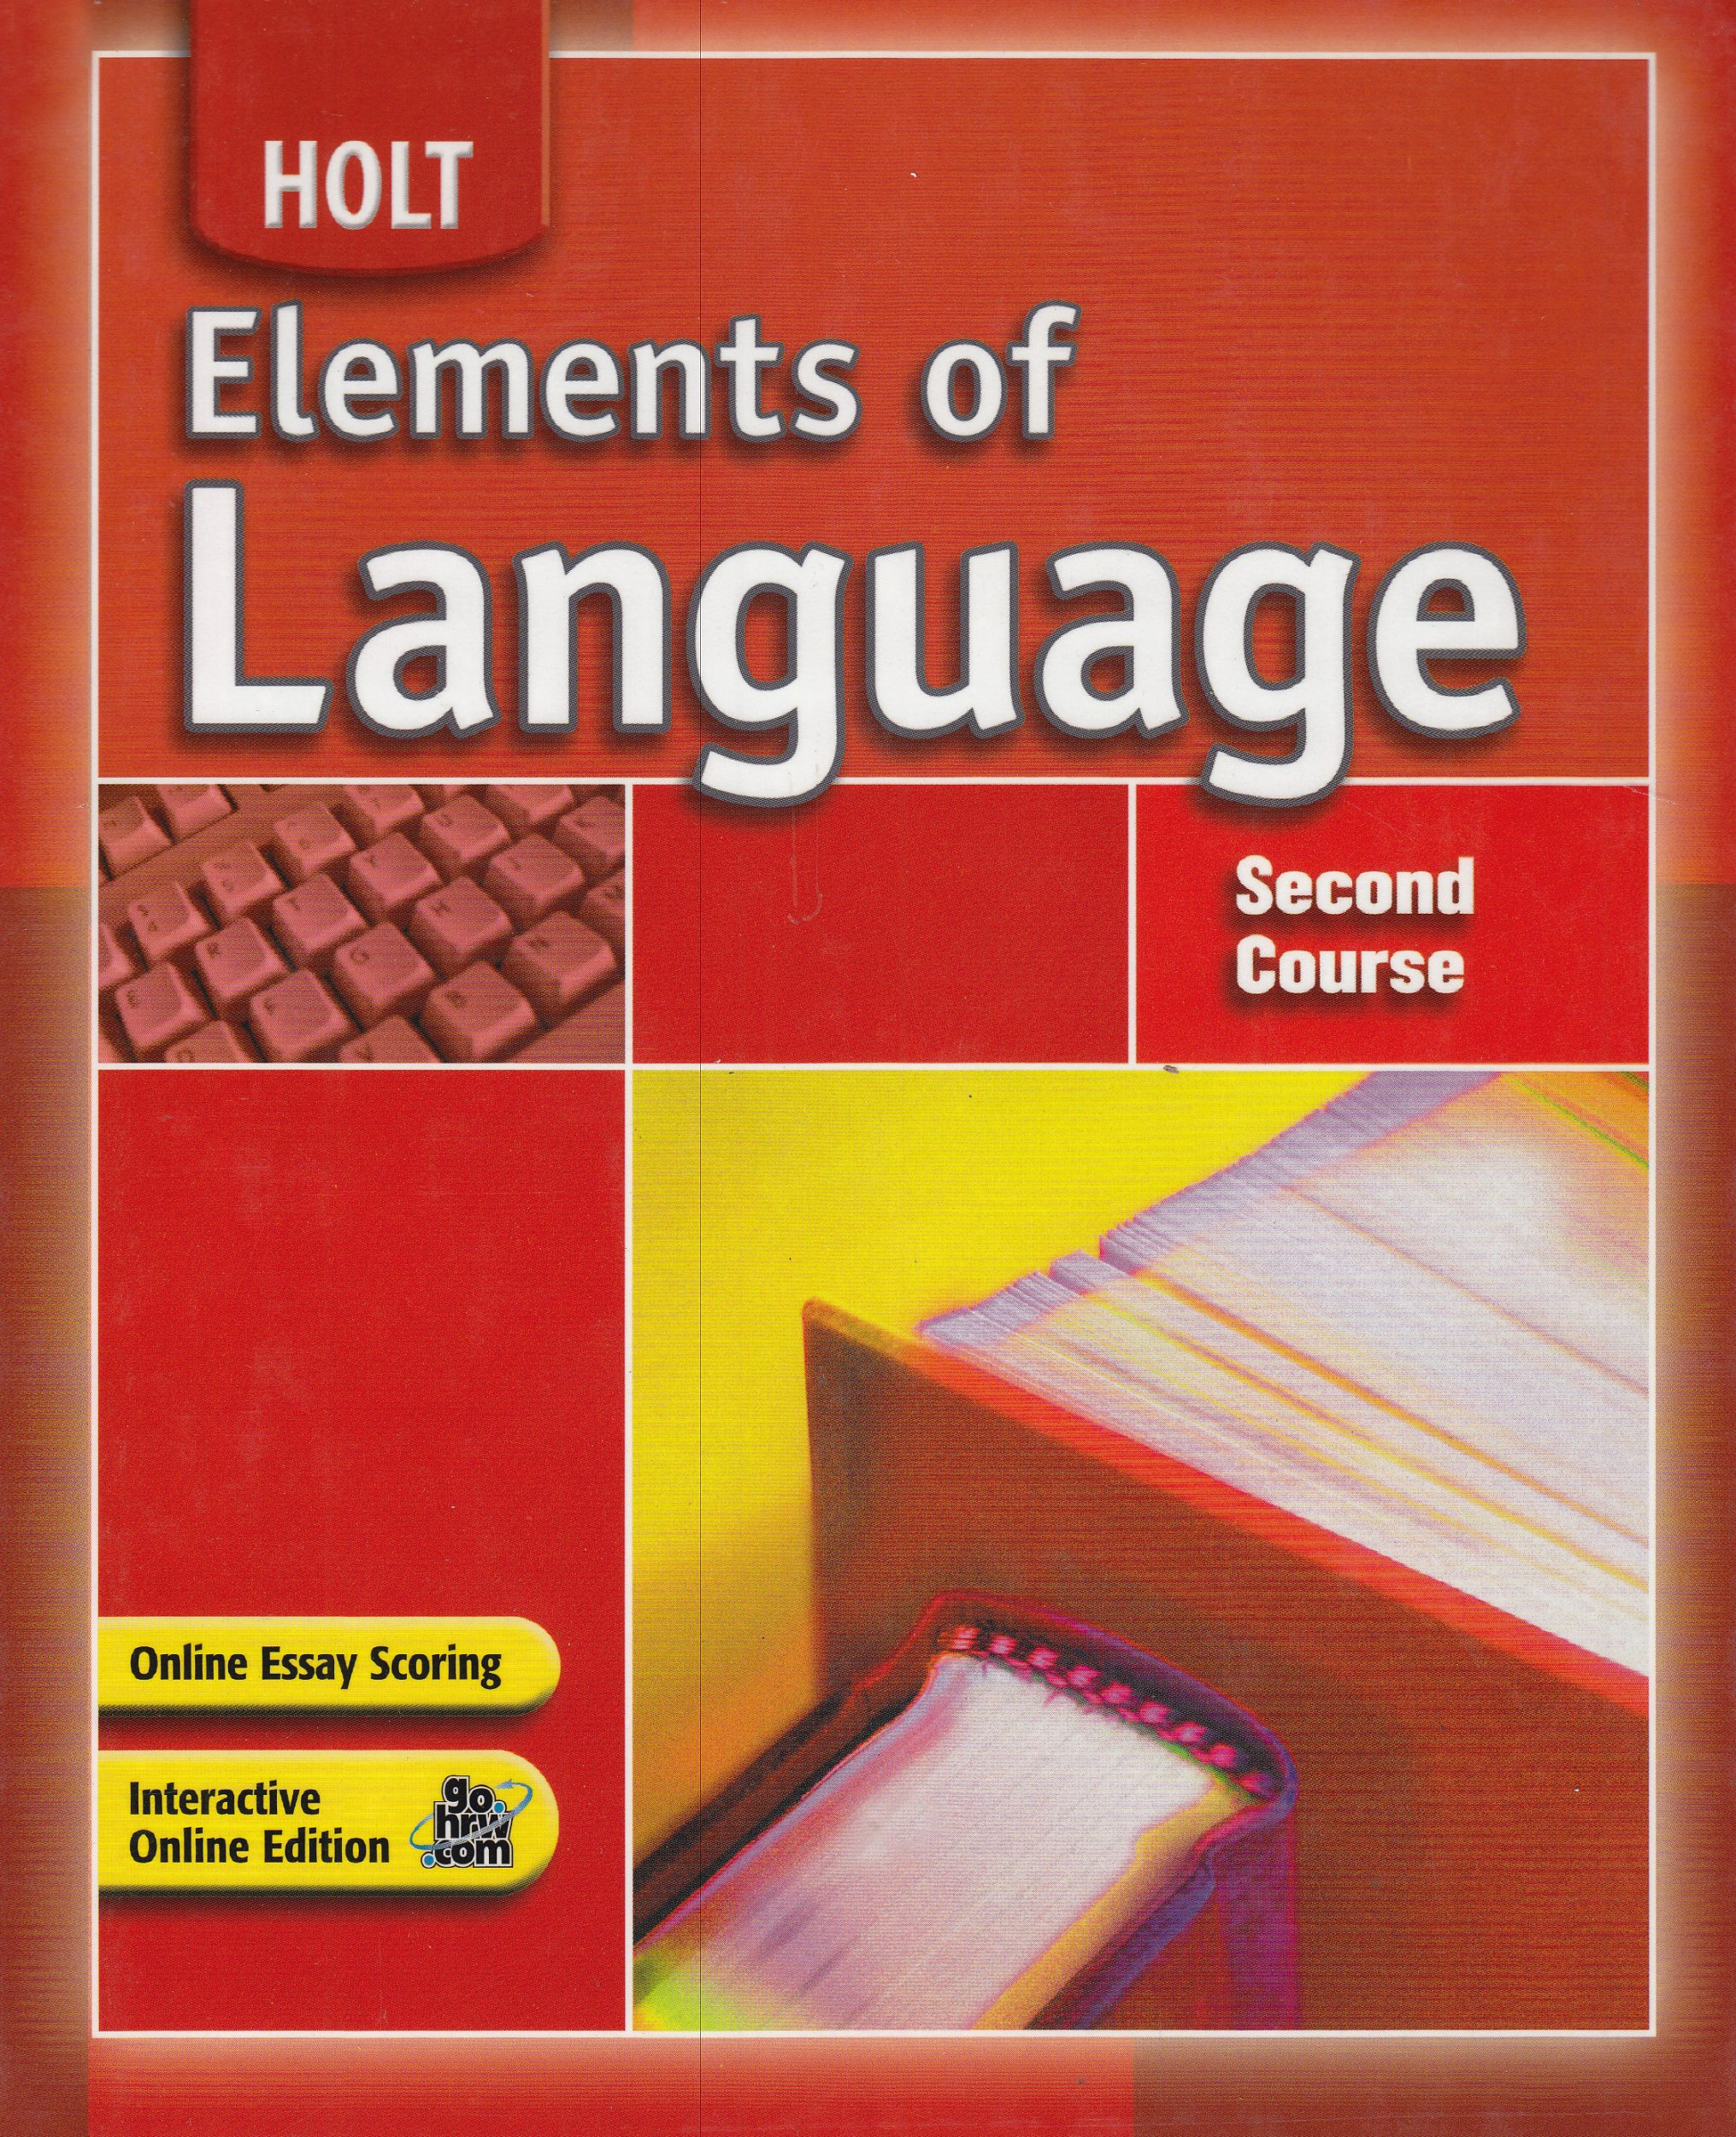 Elements of Language: Student Edition Second Course 2007 by HOLT, RINEHART AND WINSTON